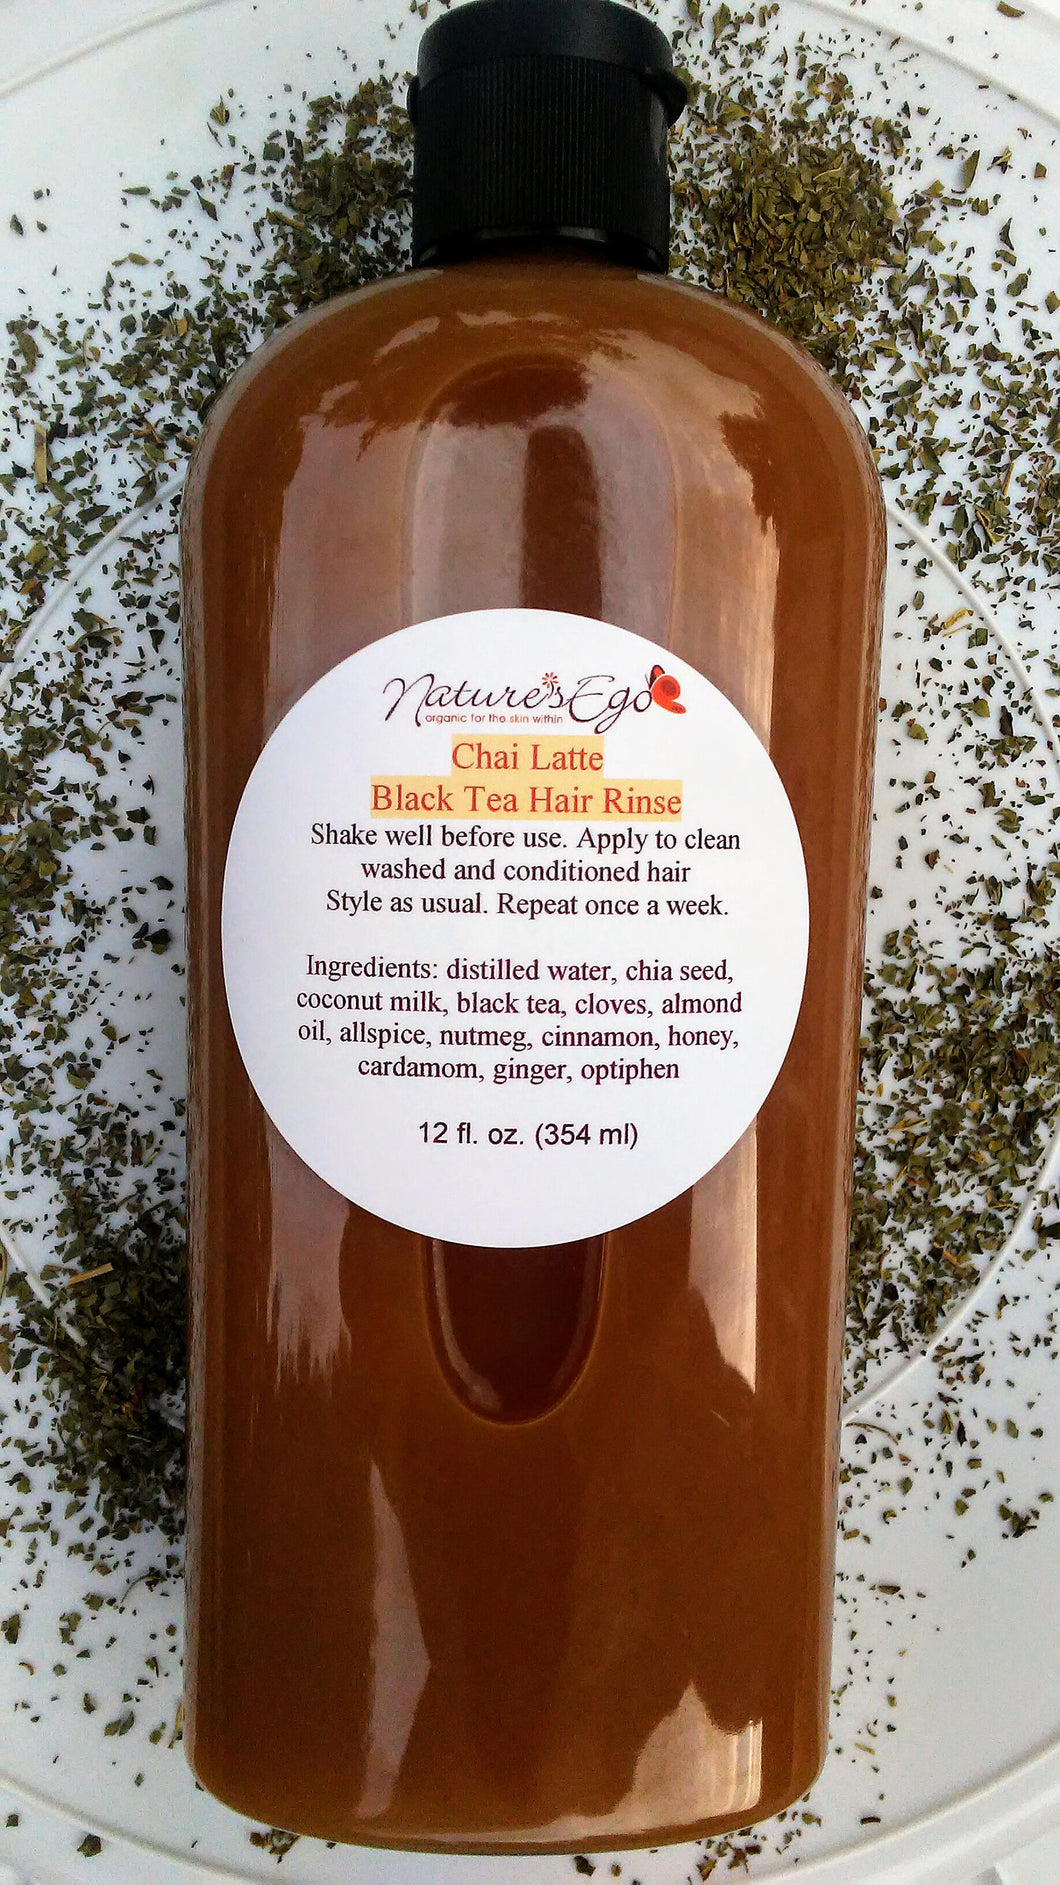 Chai Latte Black Tea Hair Rinse (reduce hairfall, shine, hair growth, dht blocker, stimulant)